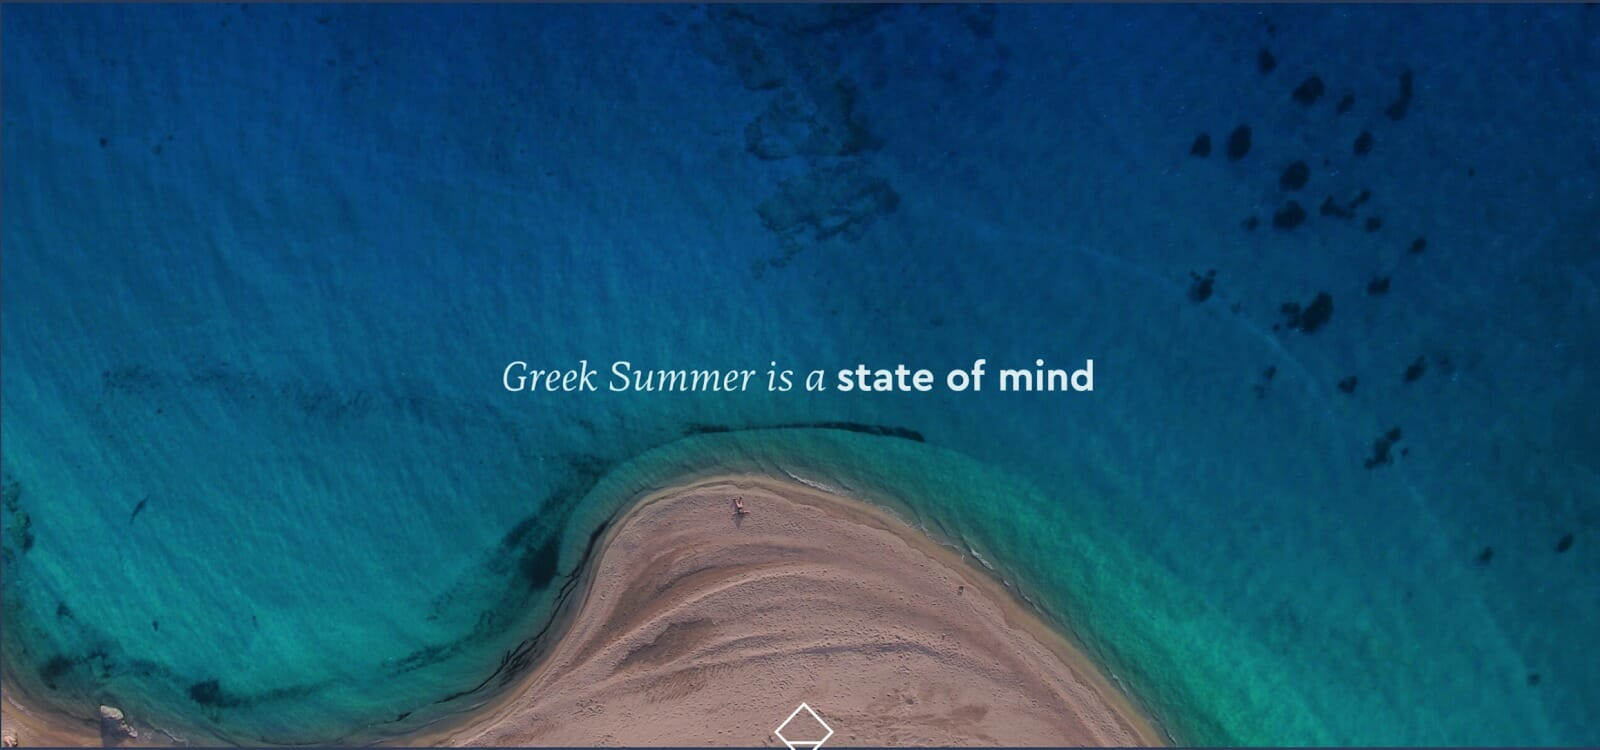 MarketingGreece Greek Summer is a State of Mind Campaign Name